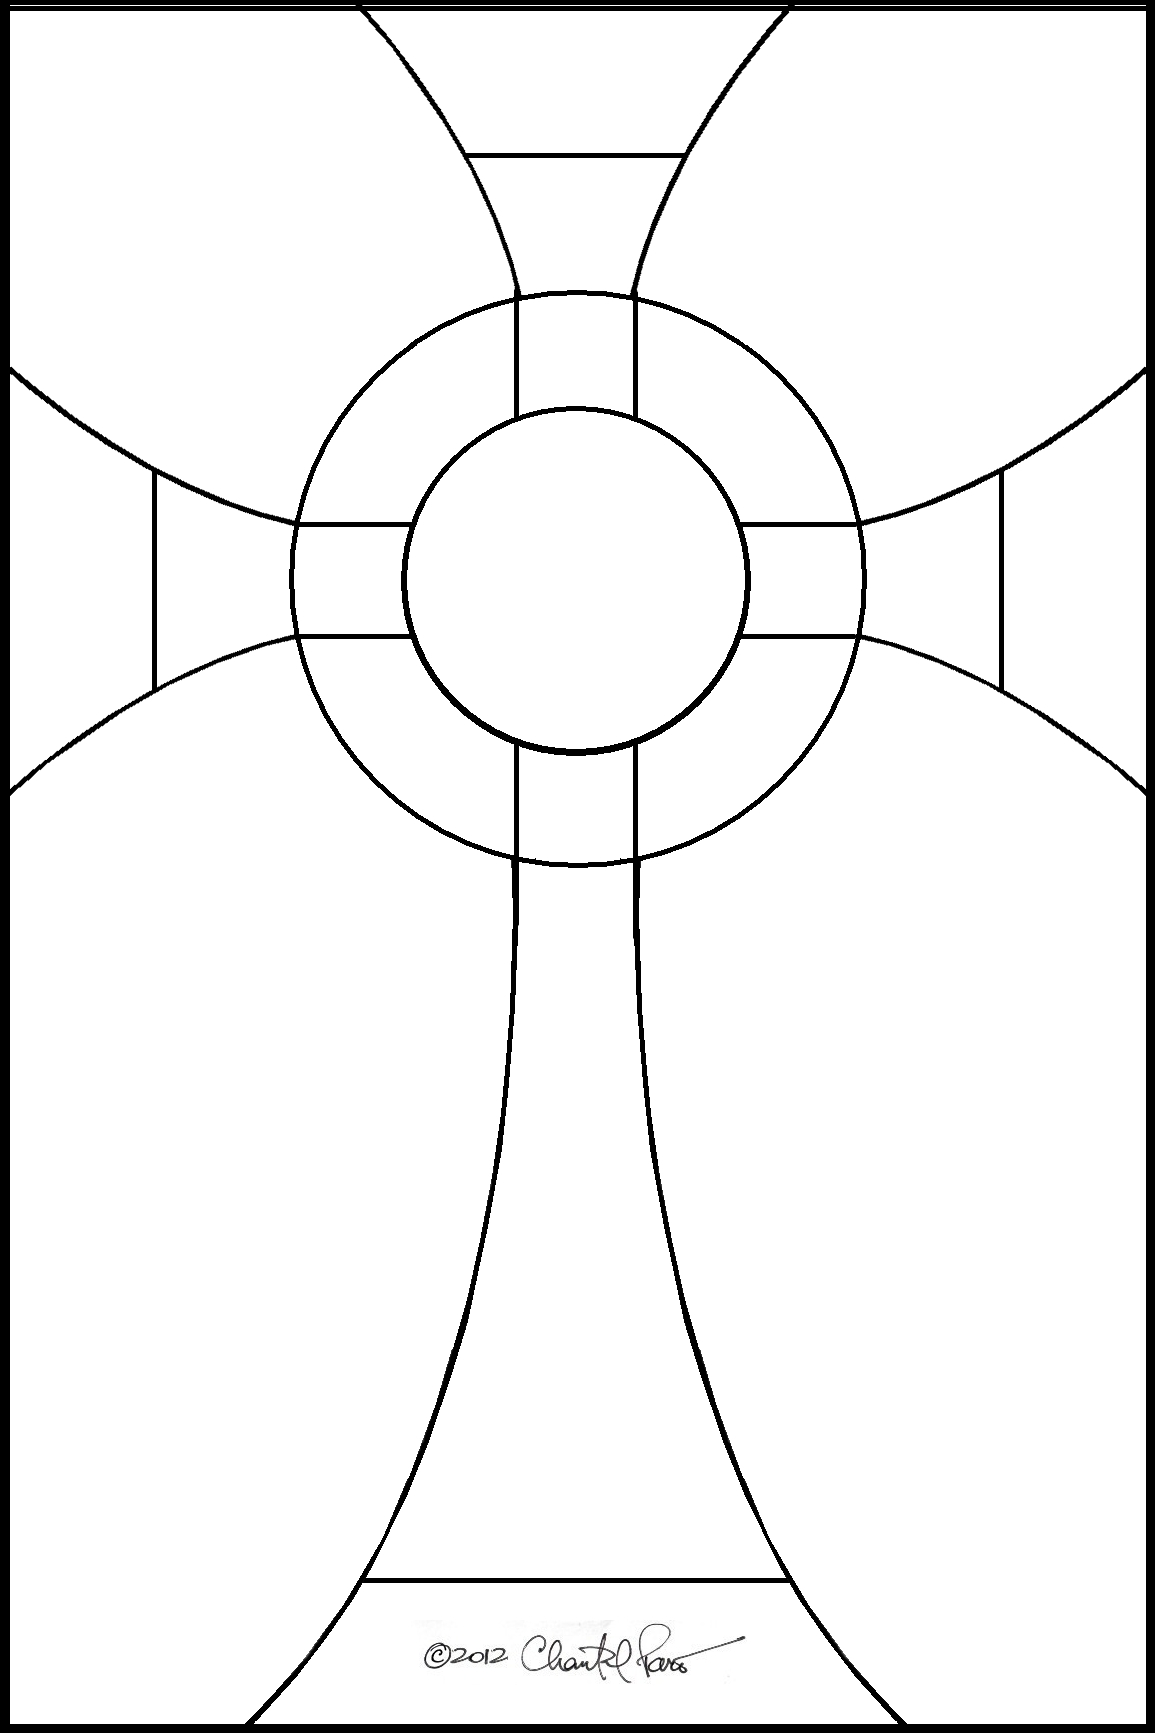 stained glass pattern for a simple cross